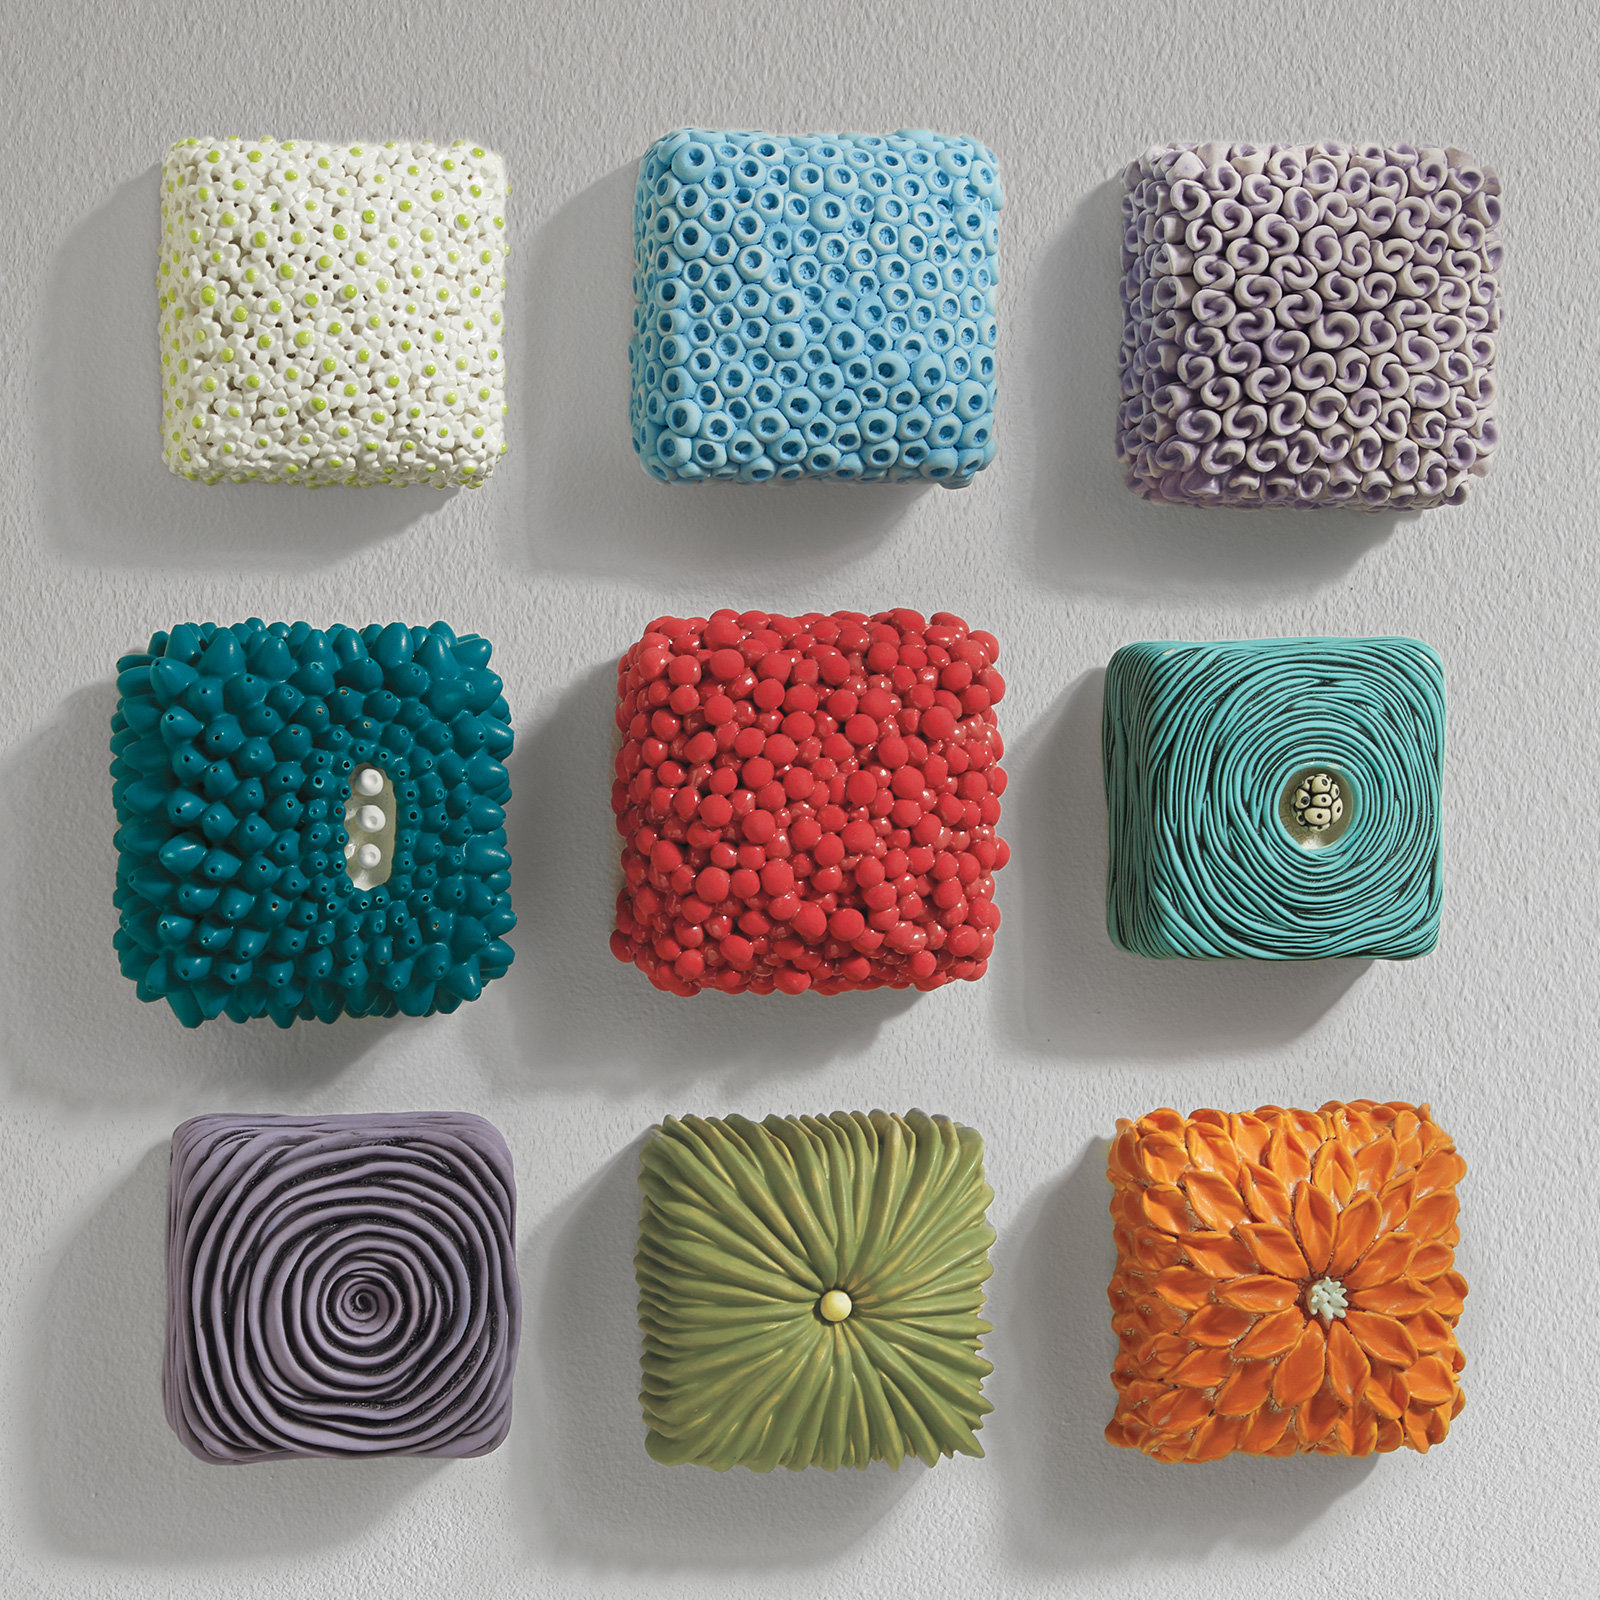 Textured Wall Boxes By Rachelle Miller Ceramic Wall Sculpture Artful Home